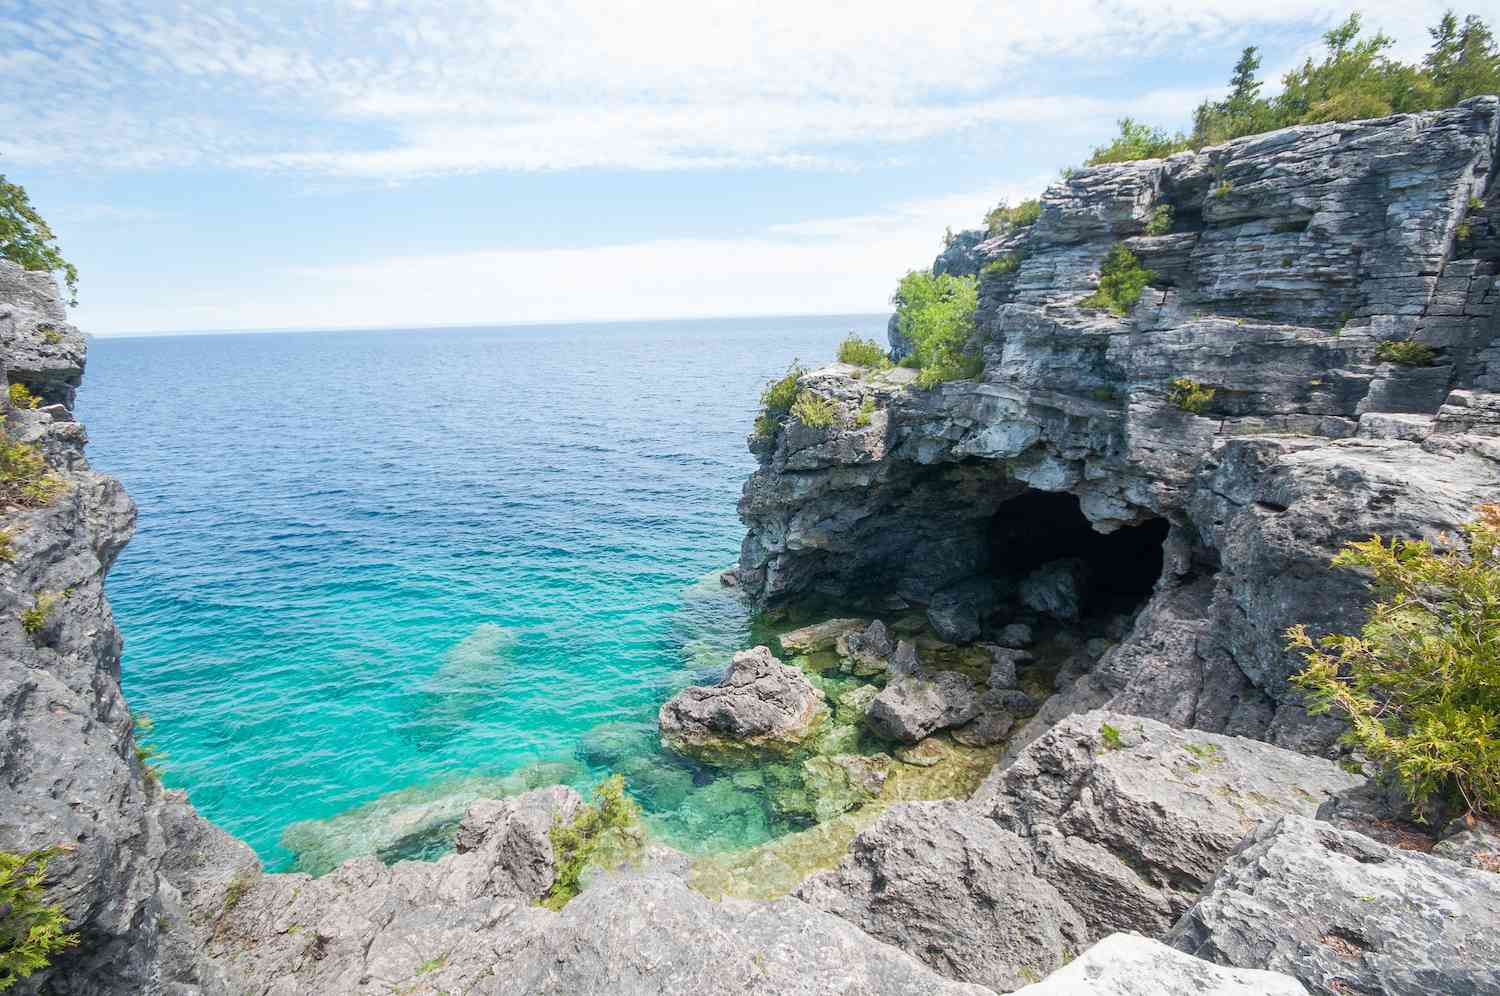 The grotto over looks the turquoise waters of Bruce Peninsula National Park